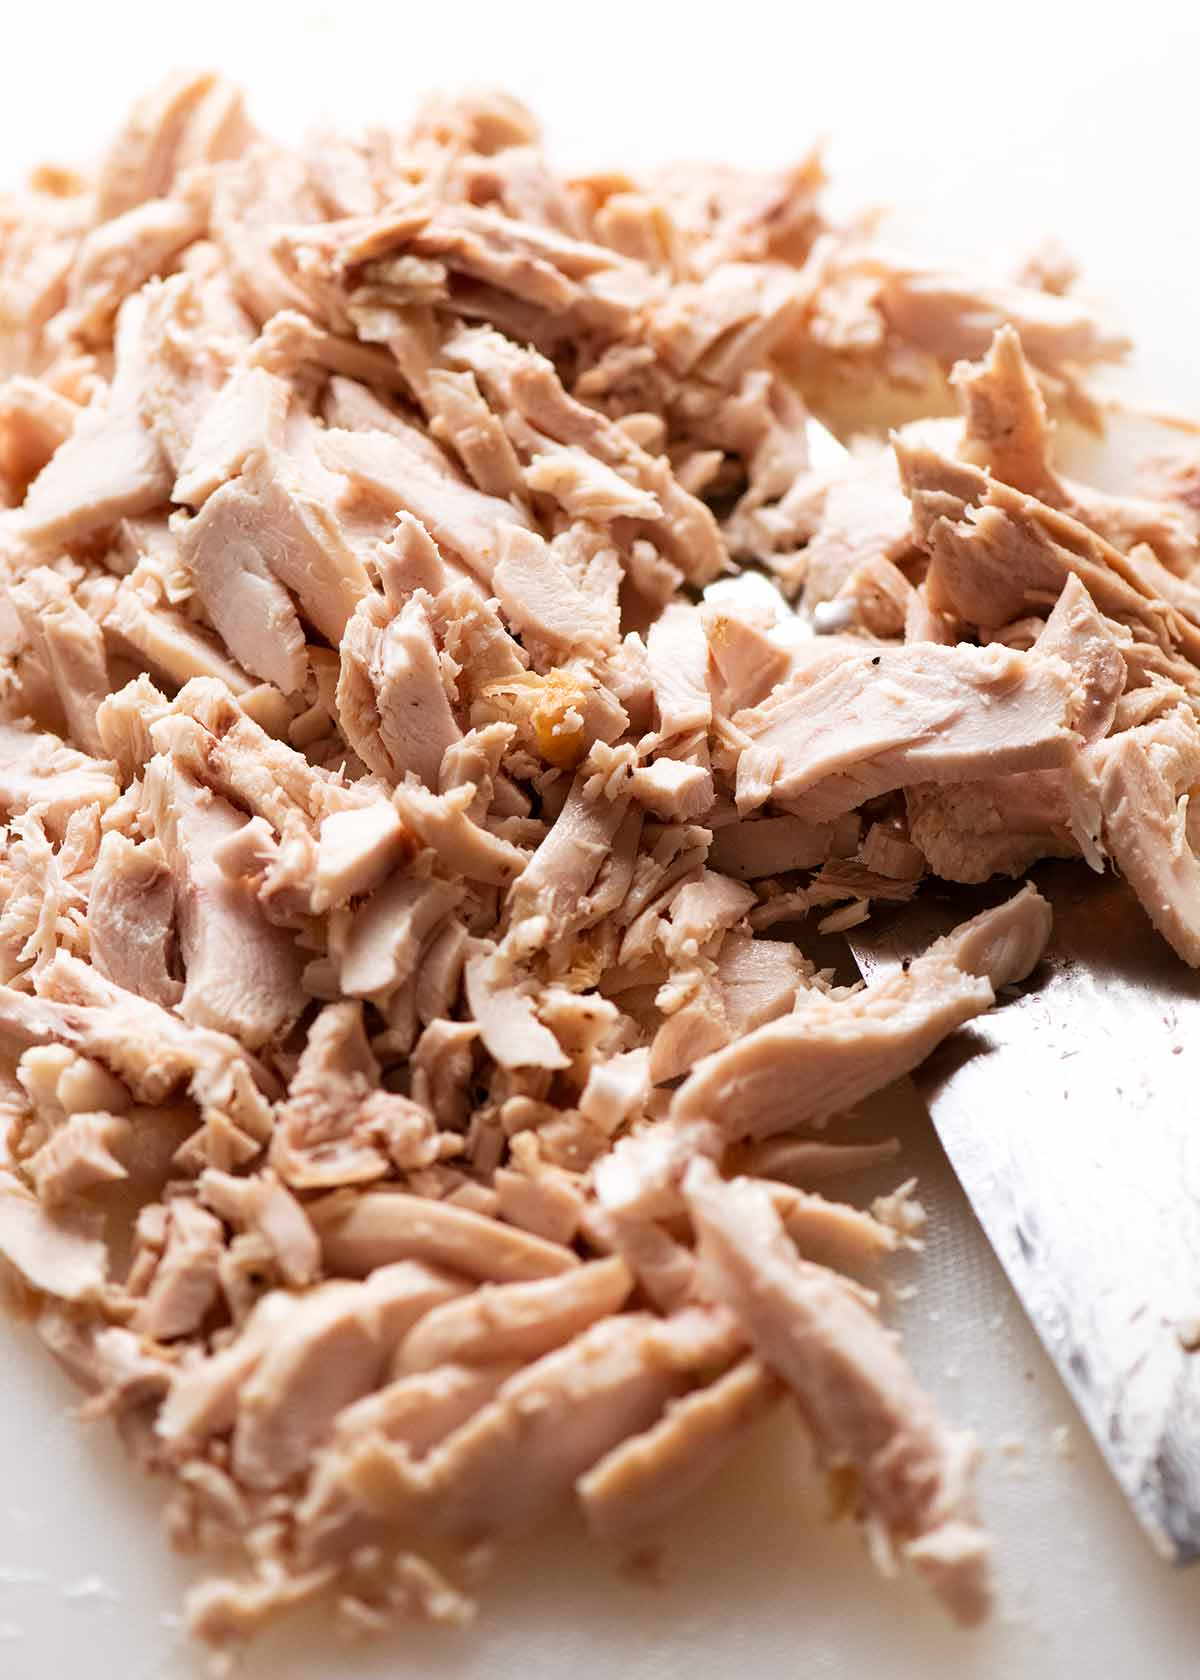 Pile of finely chopped Chicken for Creamy Chicken Pasta